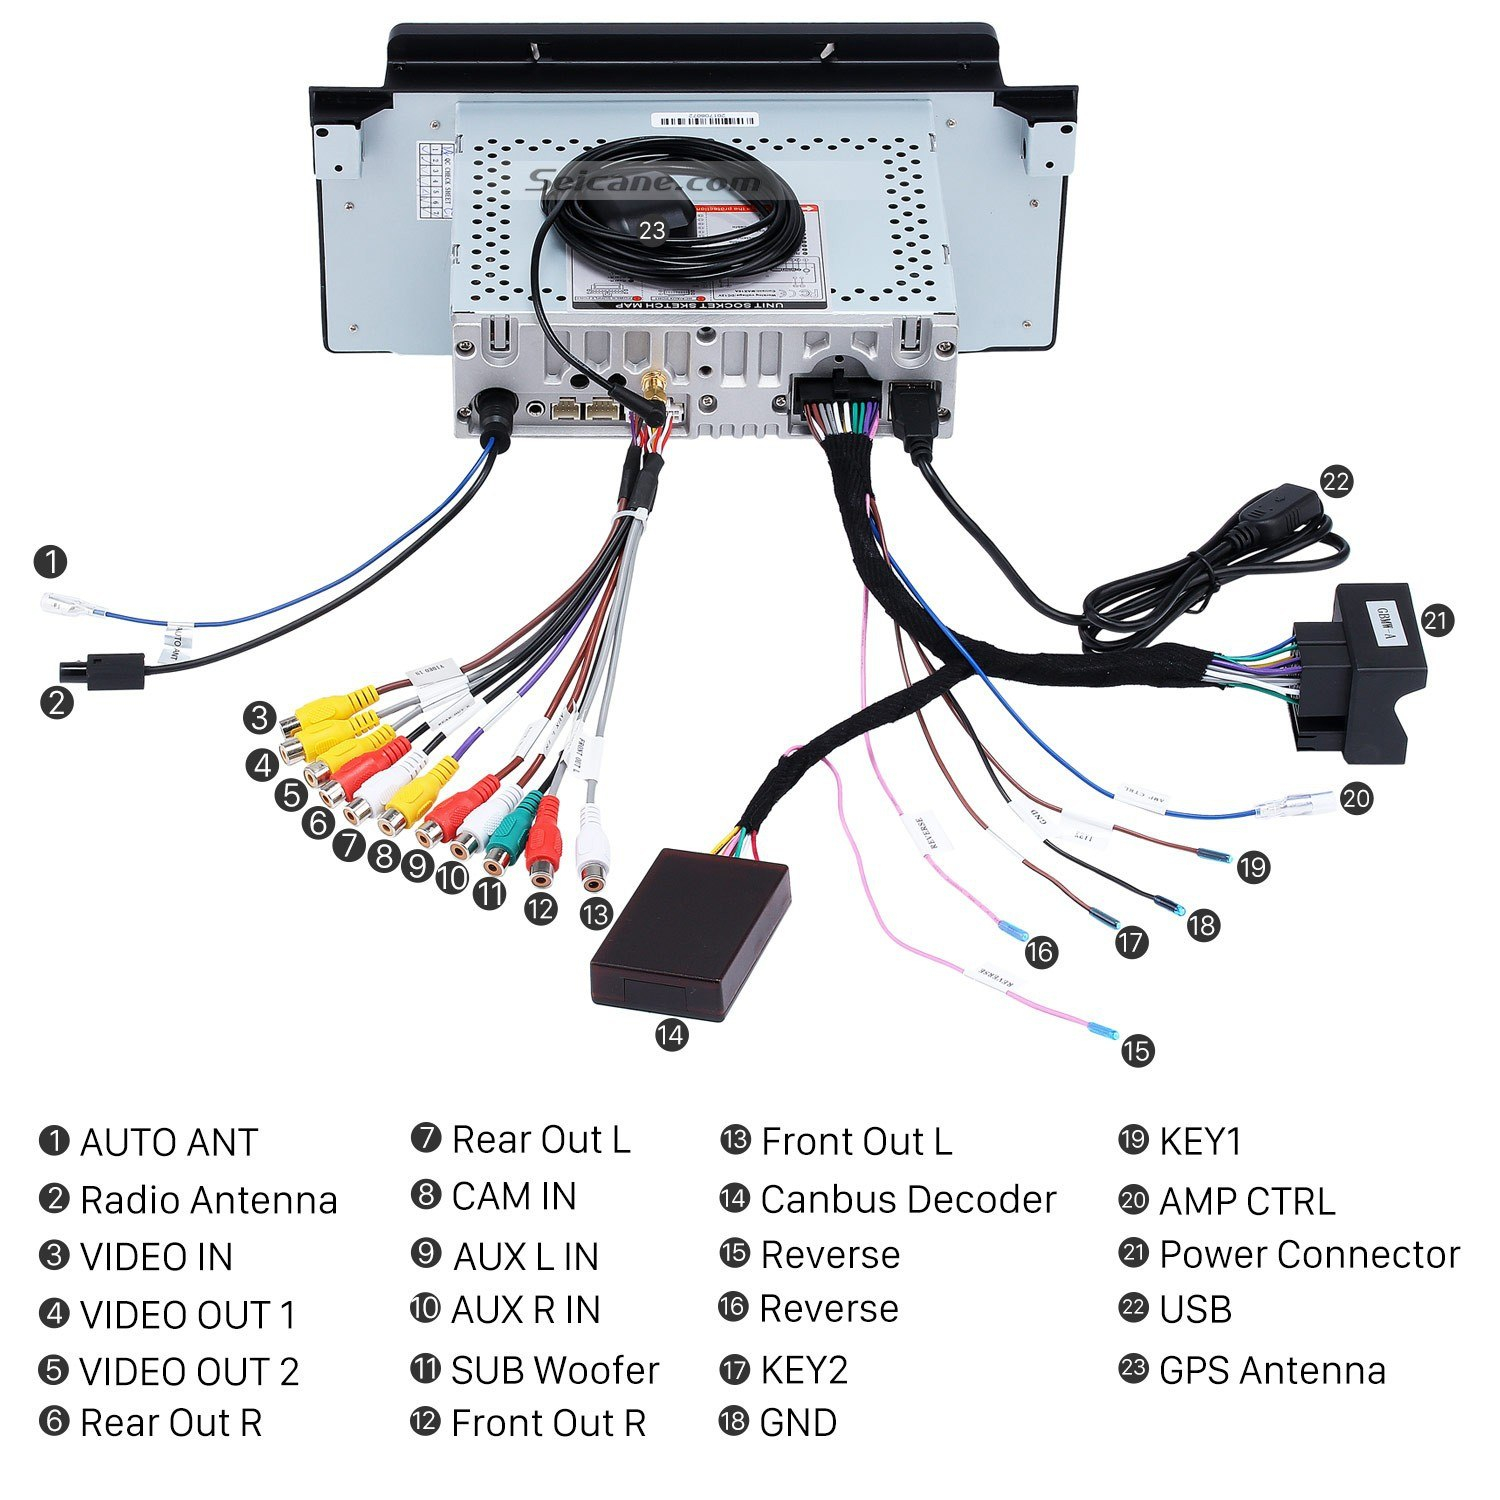 home network wiring diagram Collection-Diagram for Home Network – Luxury Light Wiring Diagram Best Inch 2000 2007 Bmw X5 E53 3 0i 3 0d 4 13-j